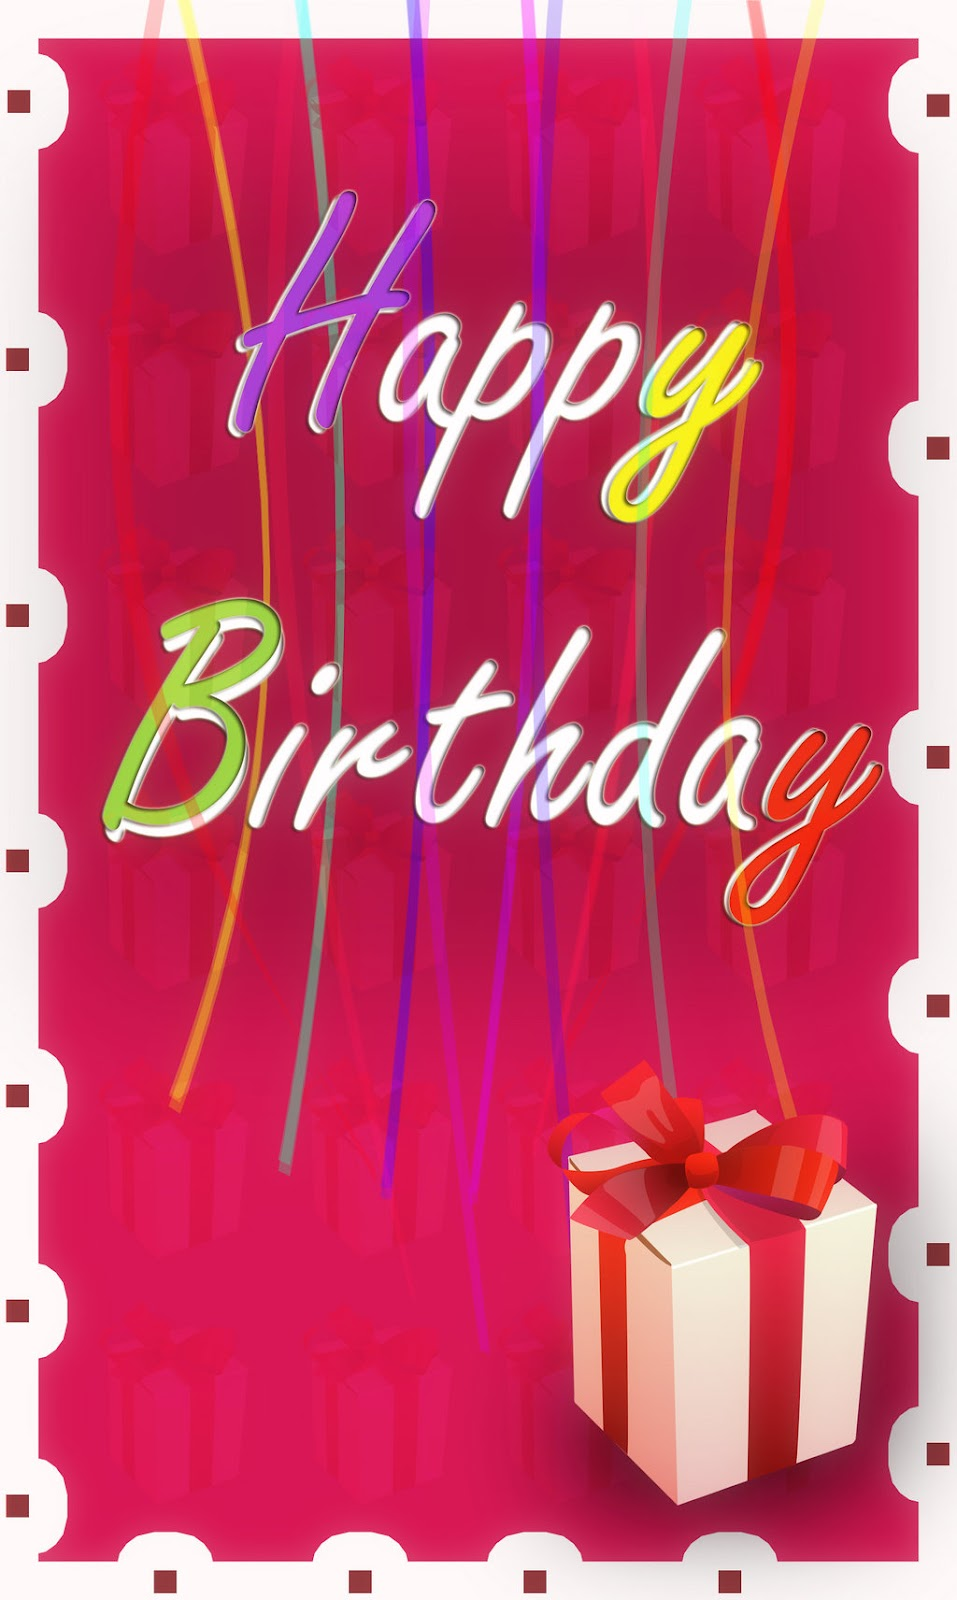 Best Greetings Happy Birthday Wishes Greeting Cards Free Download